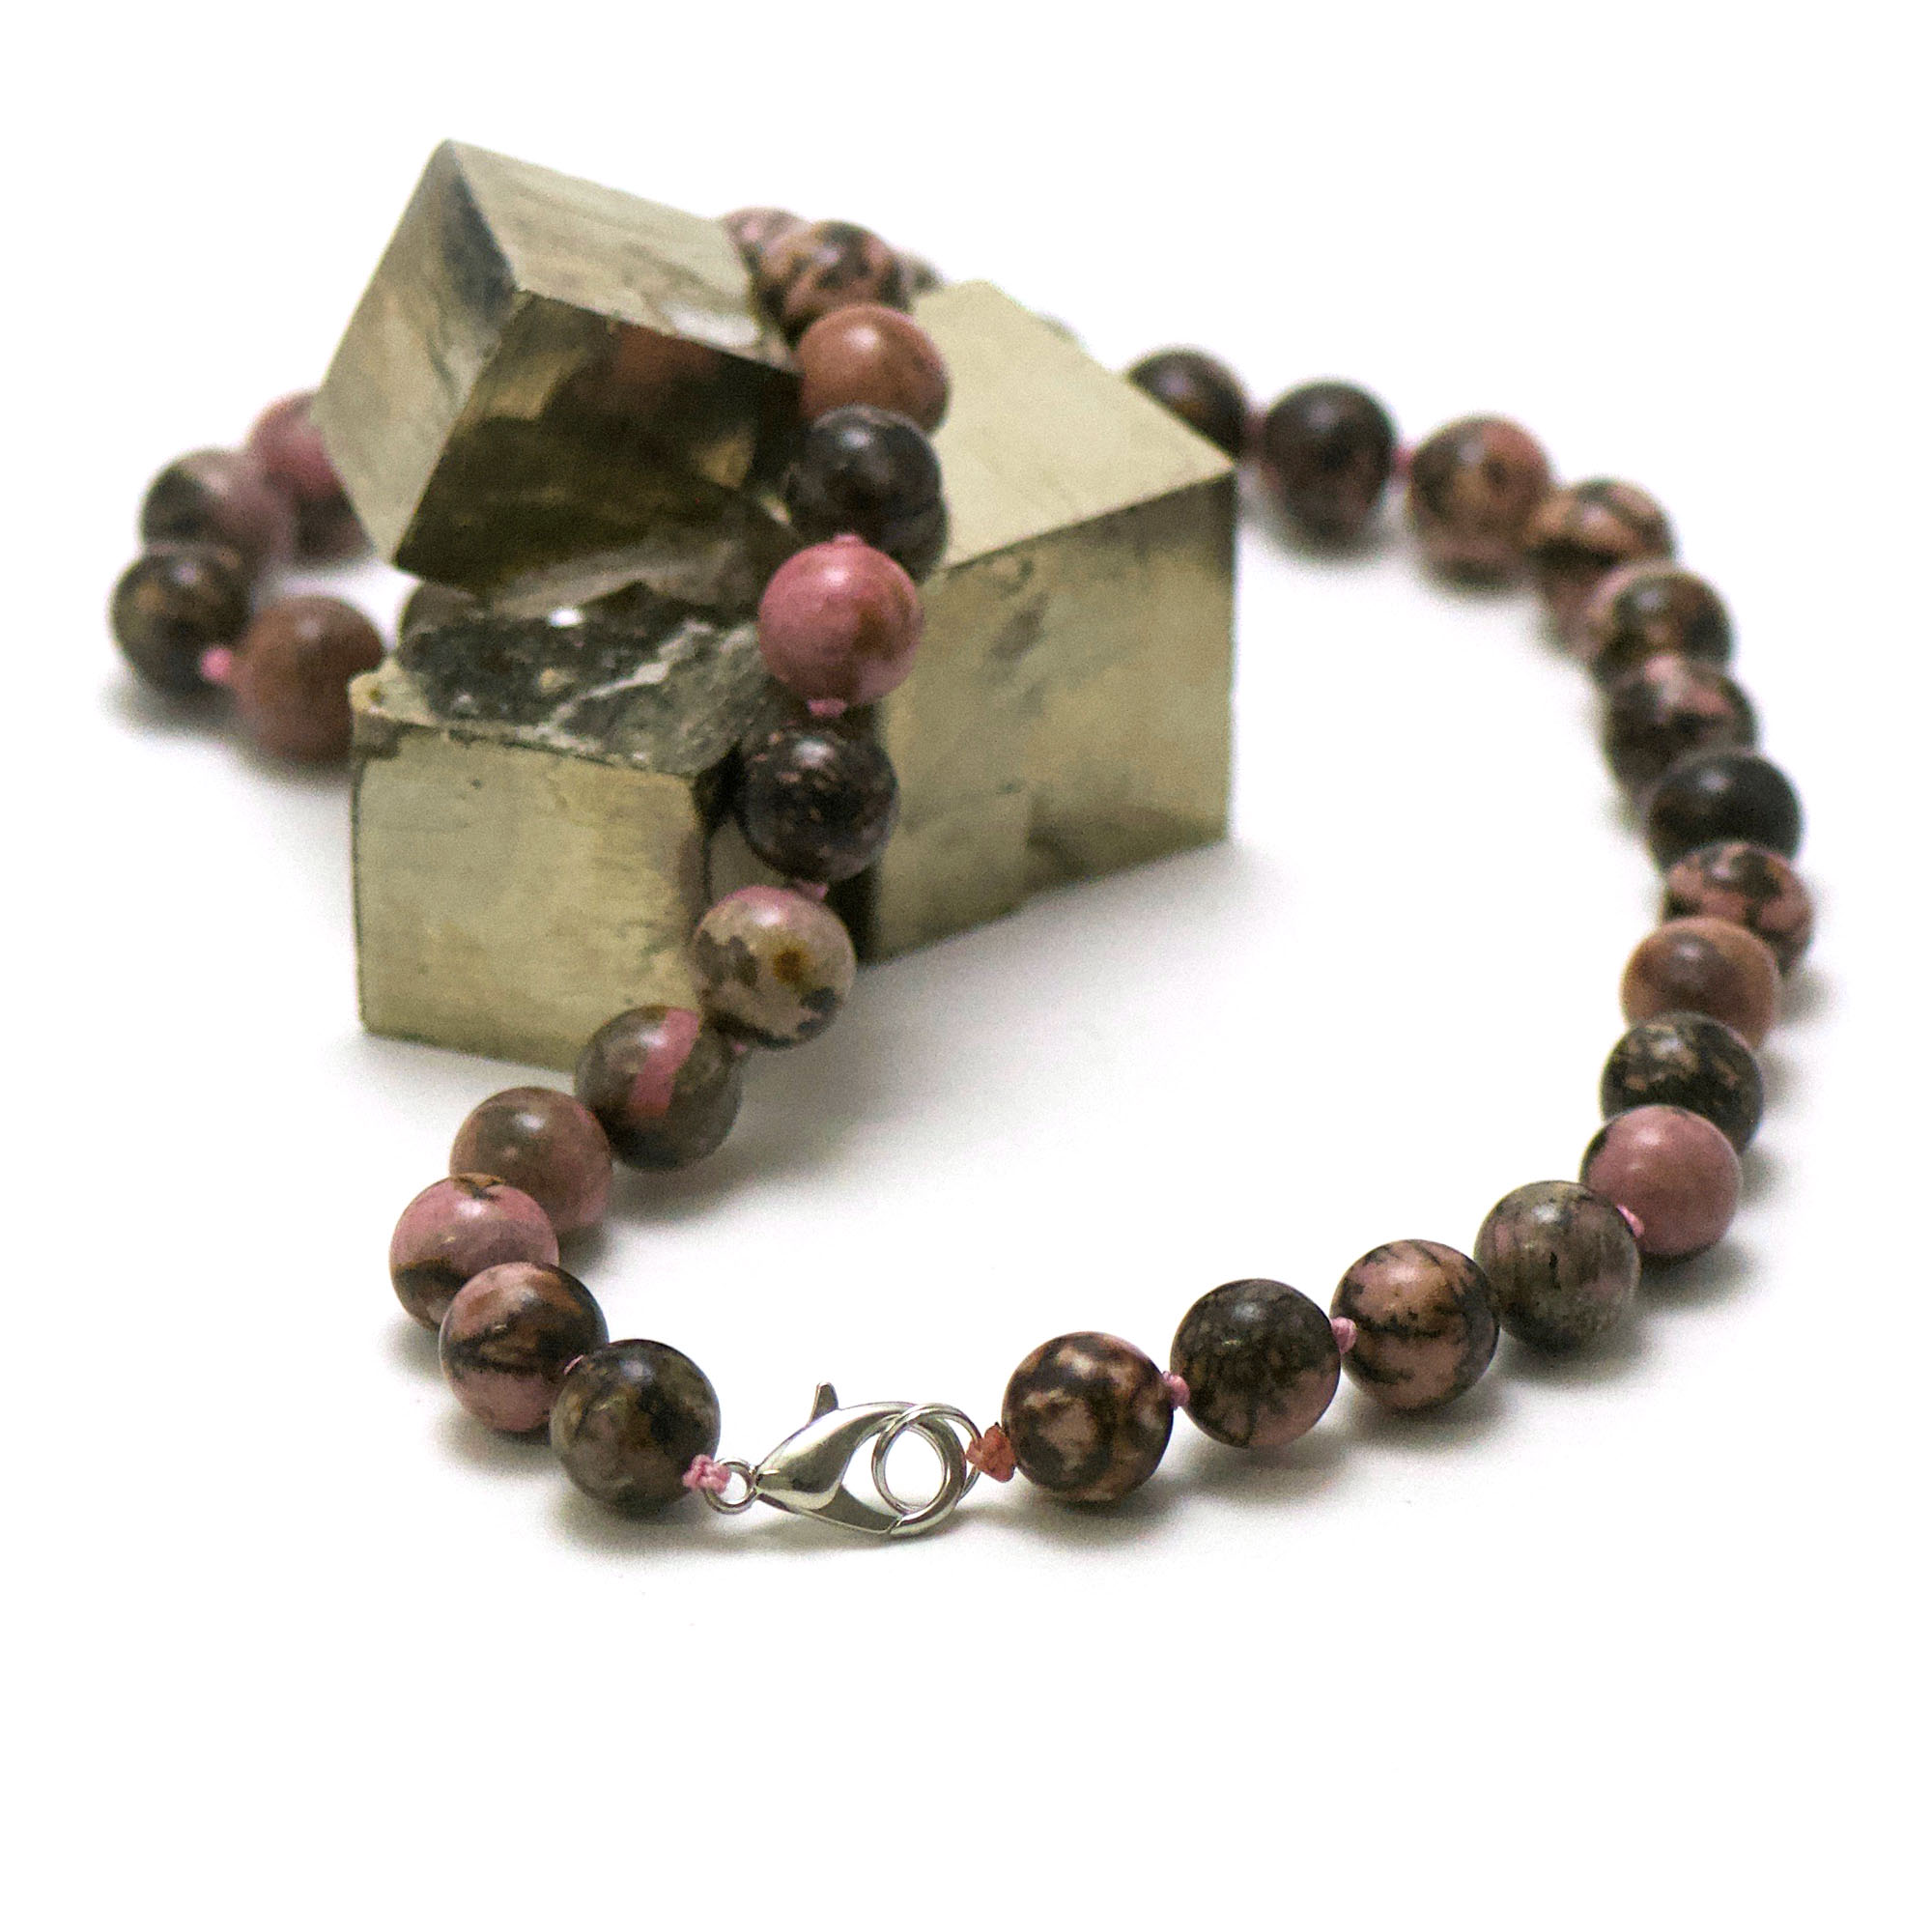 collier rhodonite de Madagascar, perle ronde 10 mm